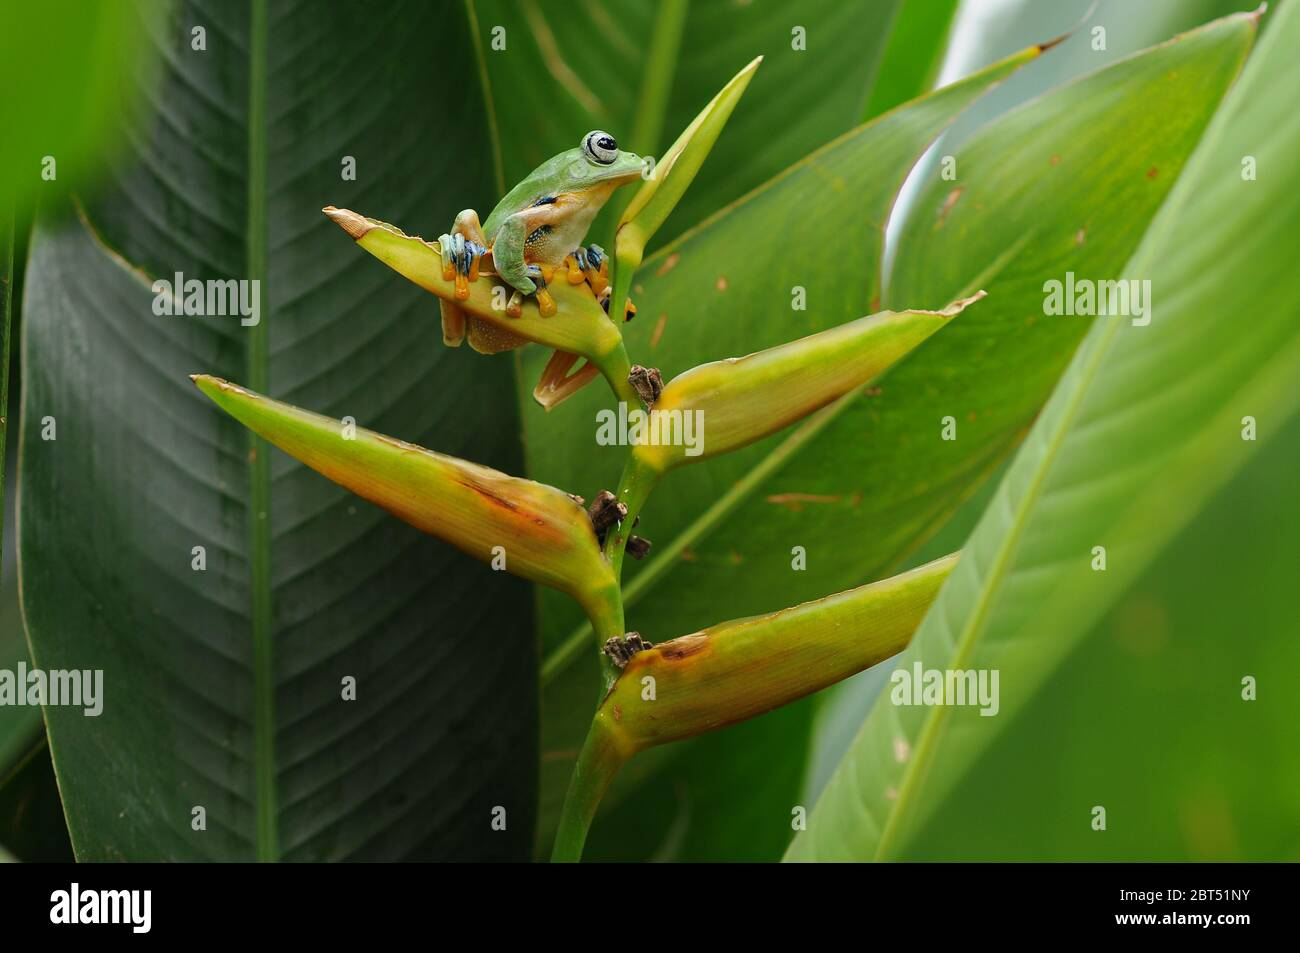 Dumpy tree frog on a flower, Indonesia Stock Photo